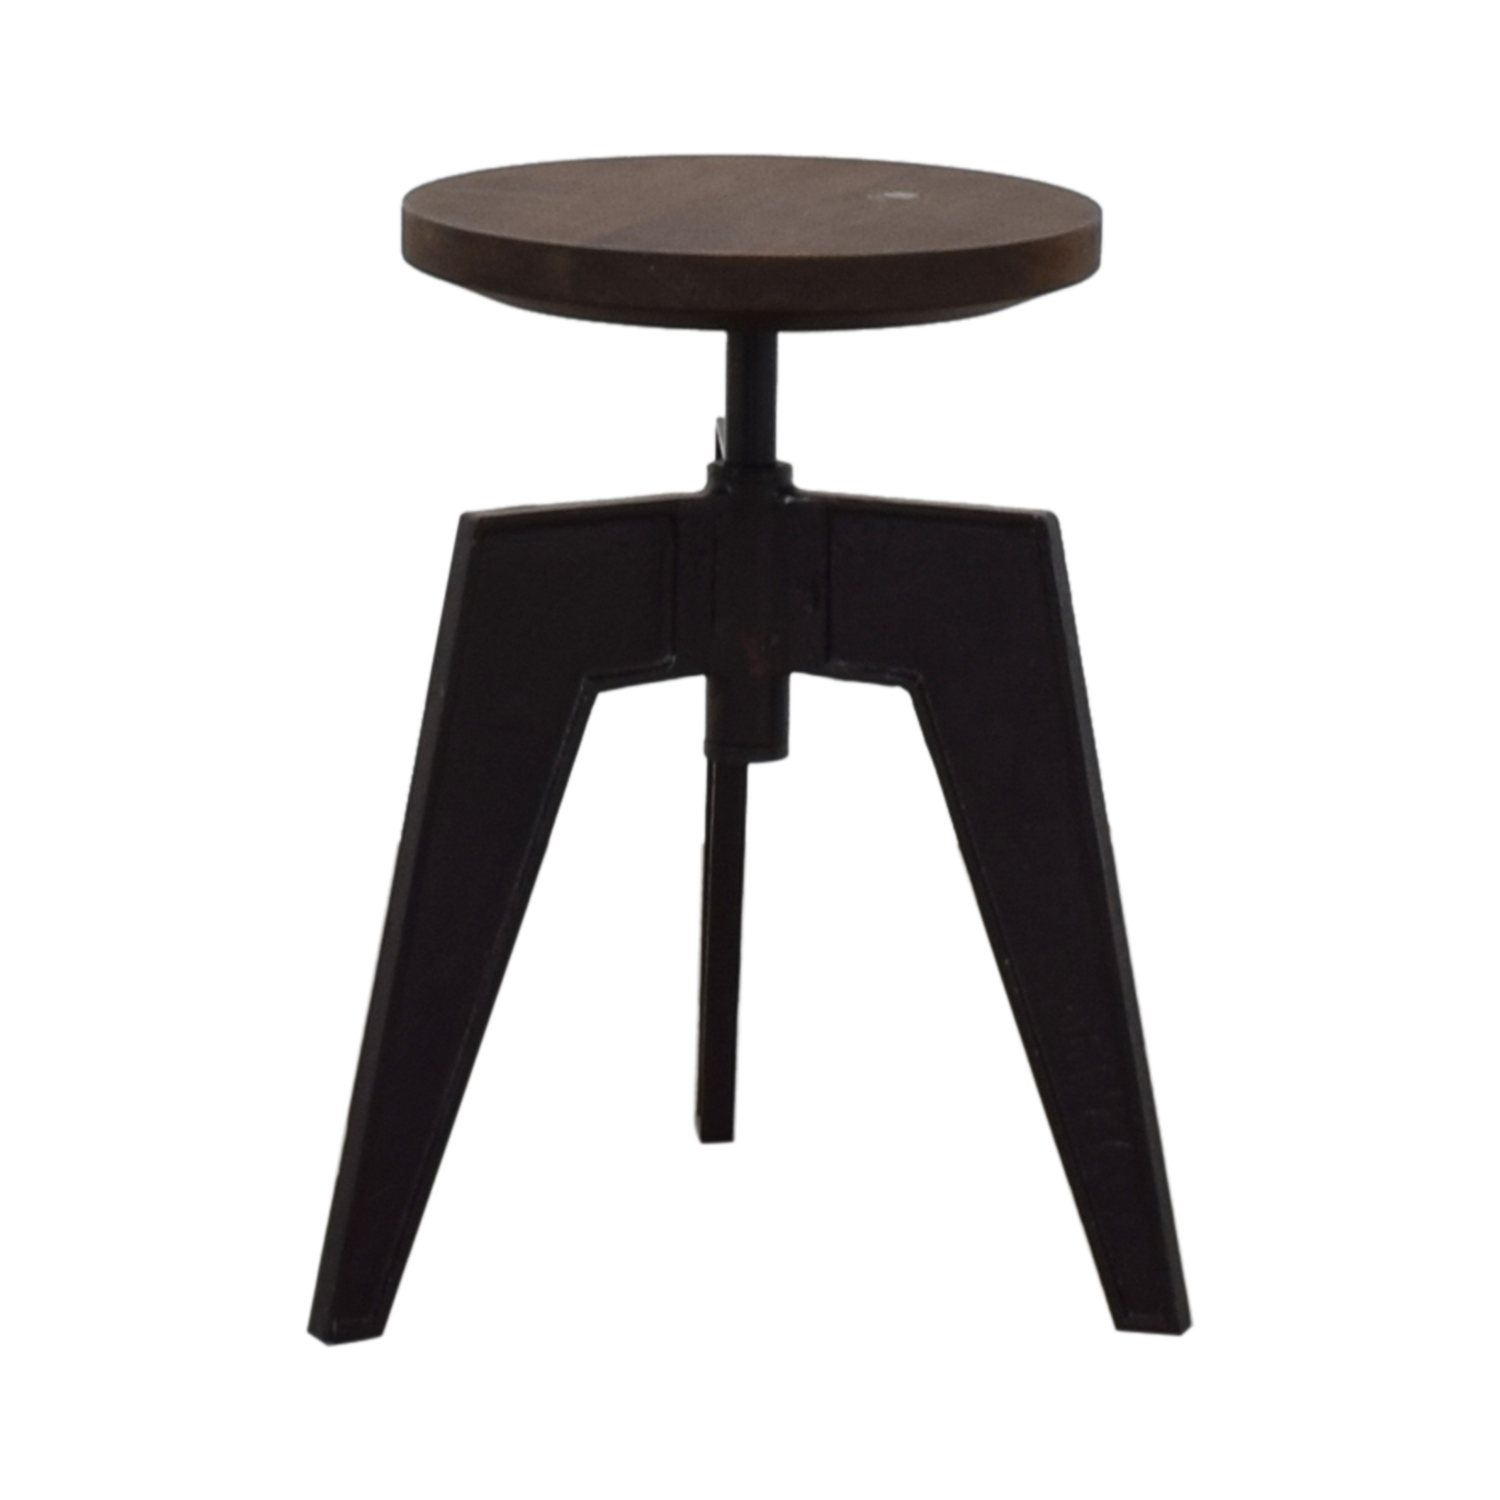 CB2 CB2 Contact Stool Chairs